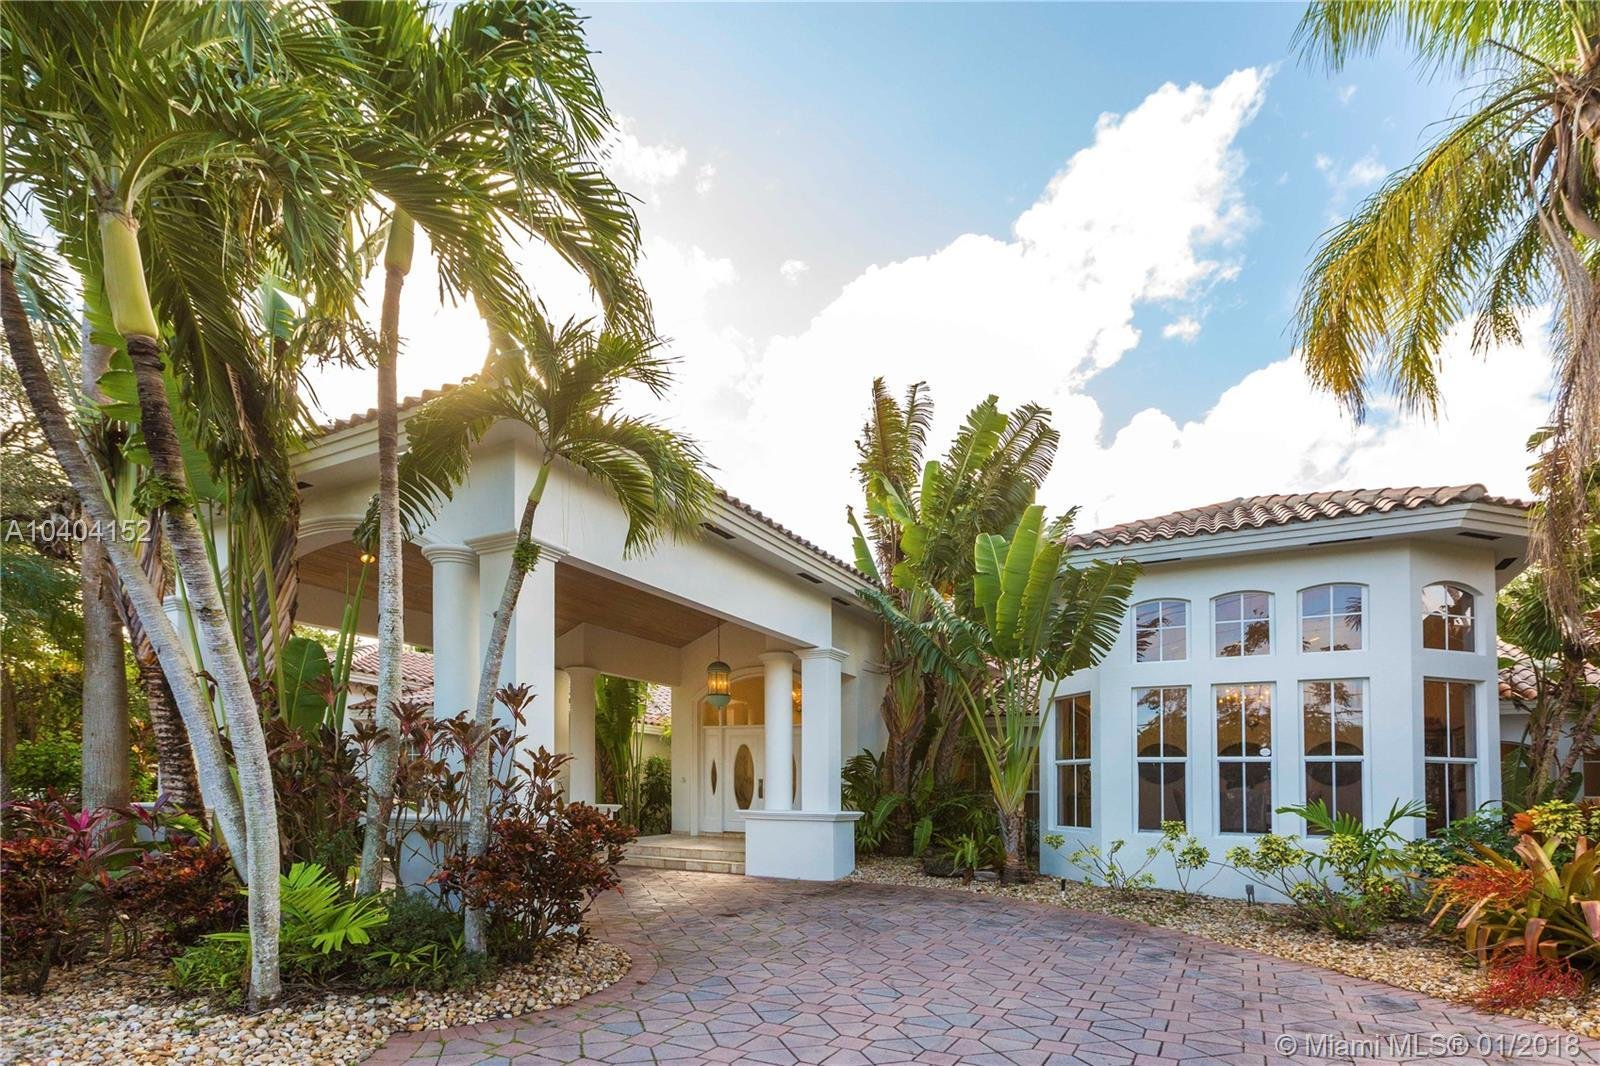 Best 152 Florida 6 Bedroom Homes For Sale Average 248 198 With Pictures